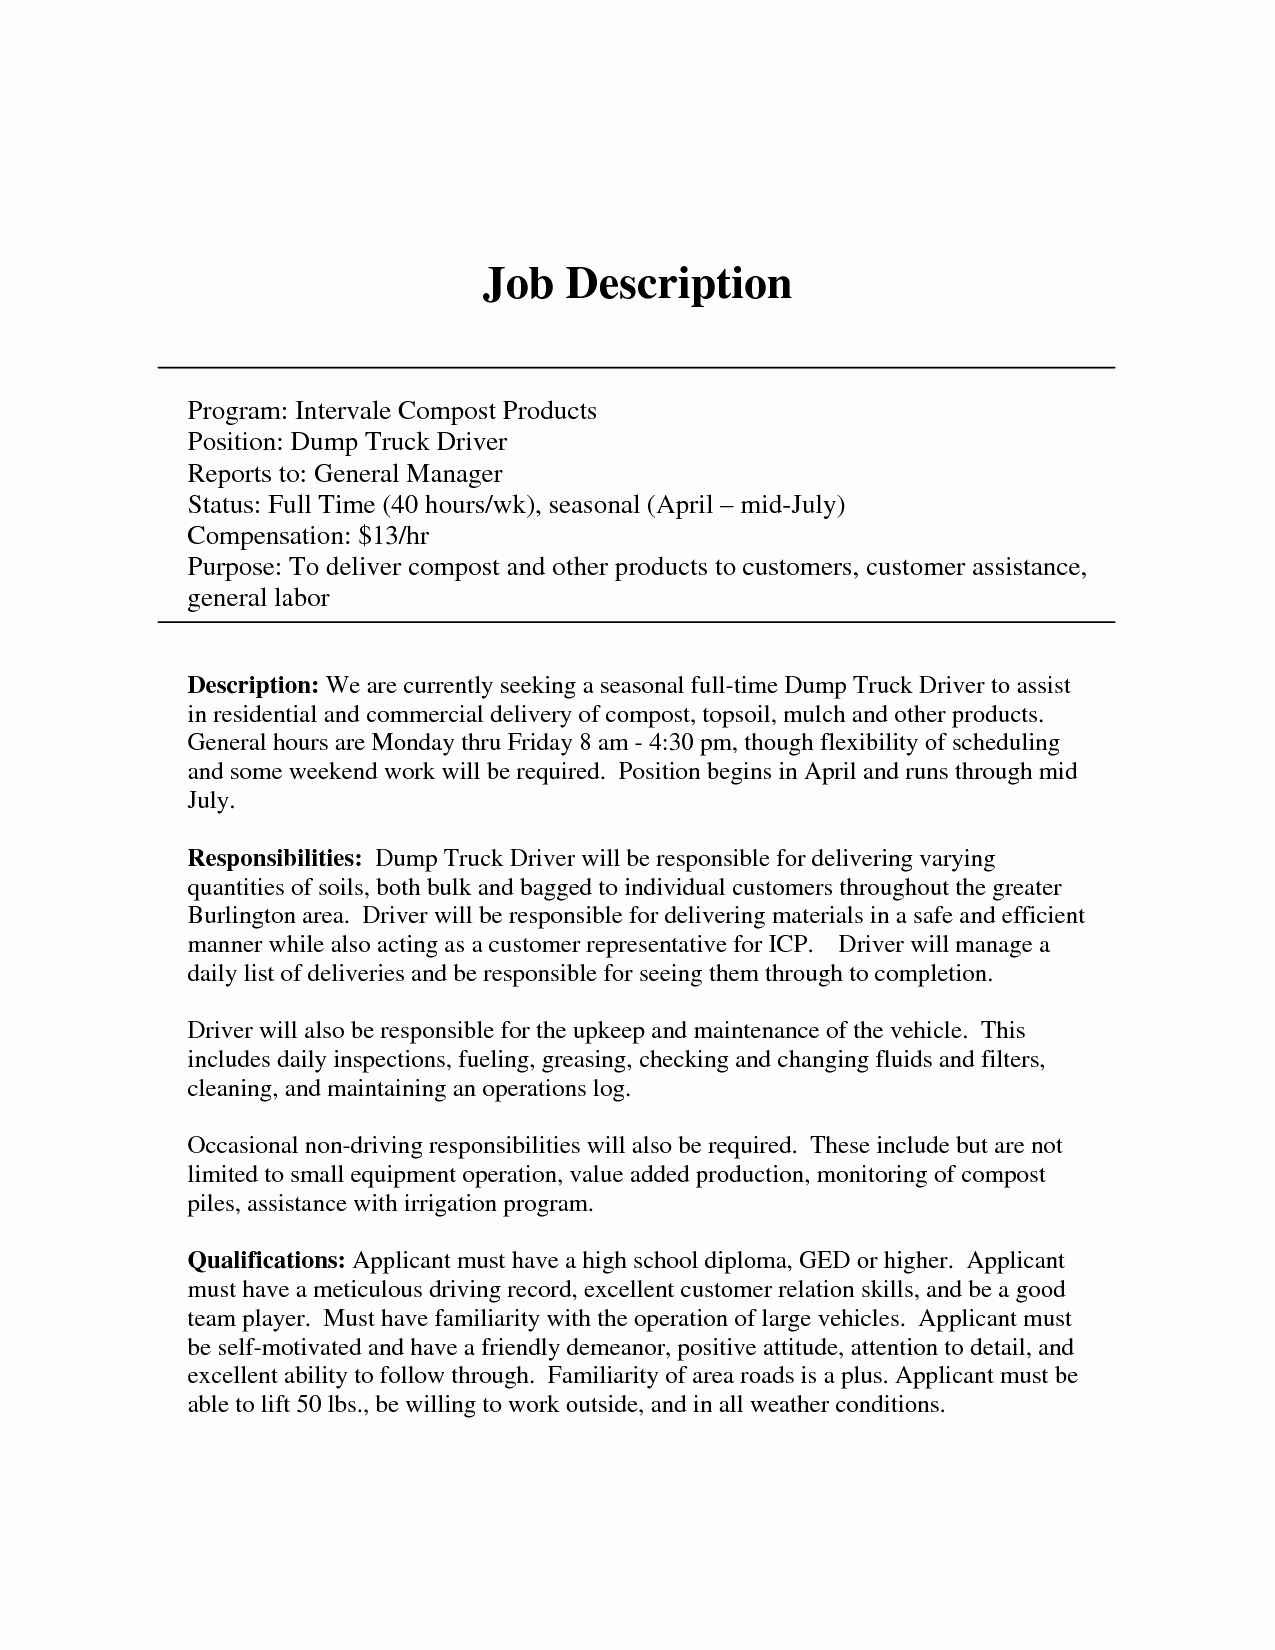 Cdl Truck Driver Job Description for Resume - Job Description for Delivery Driver Best Personal Driver Job